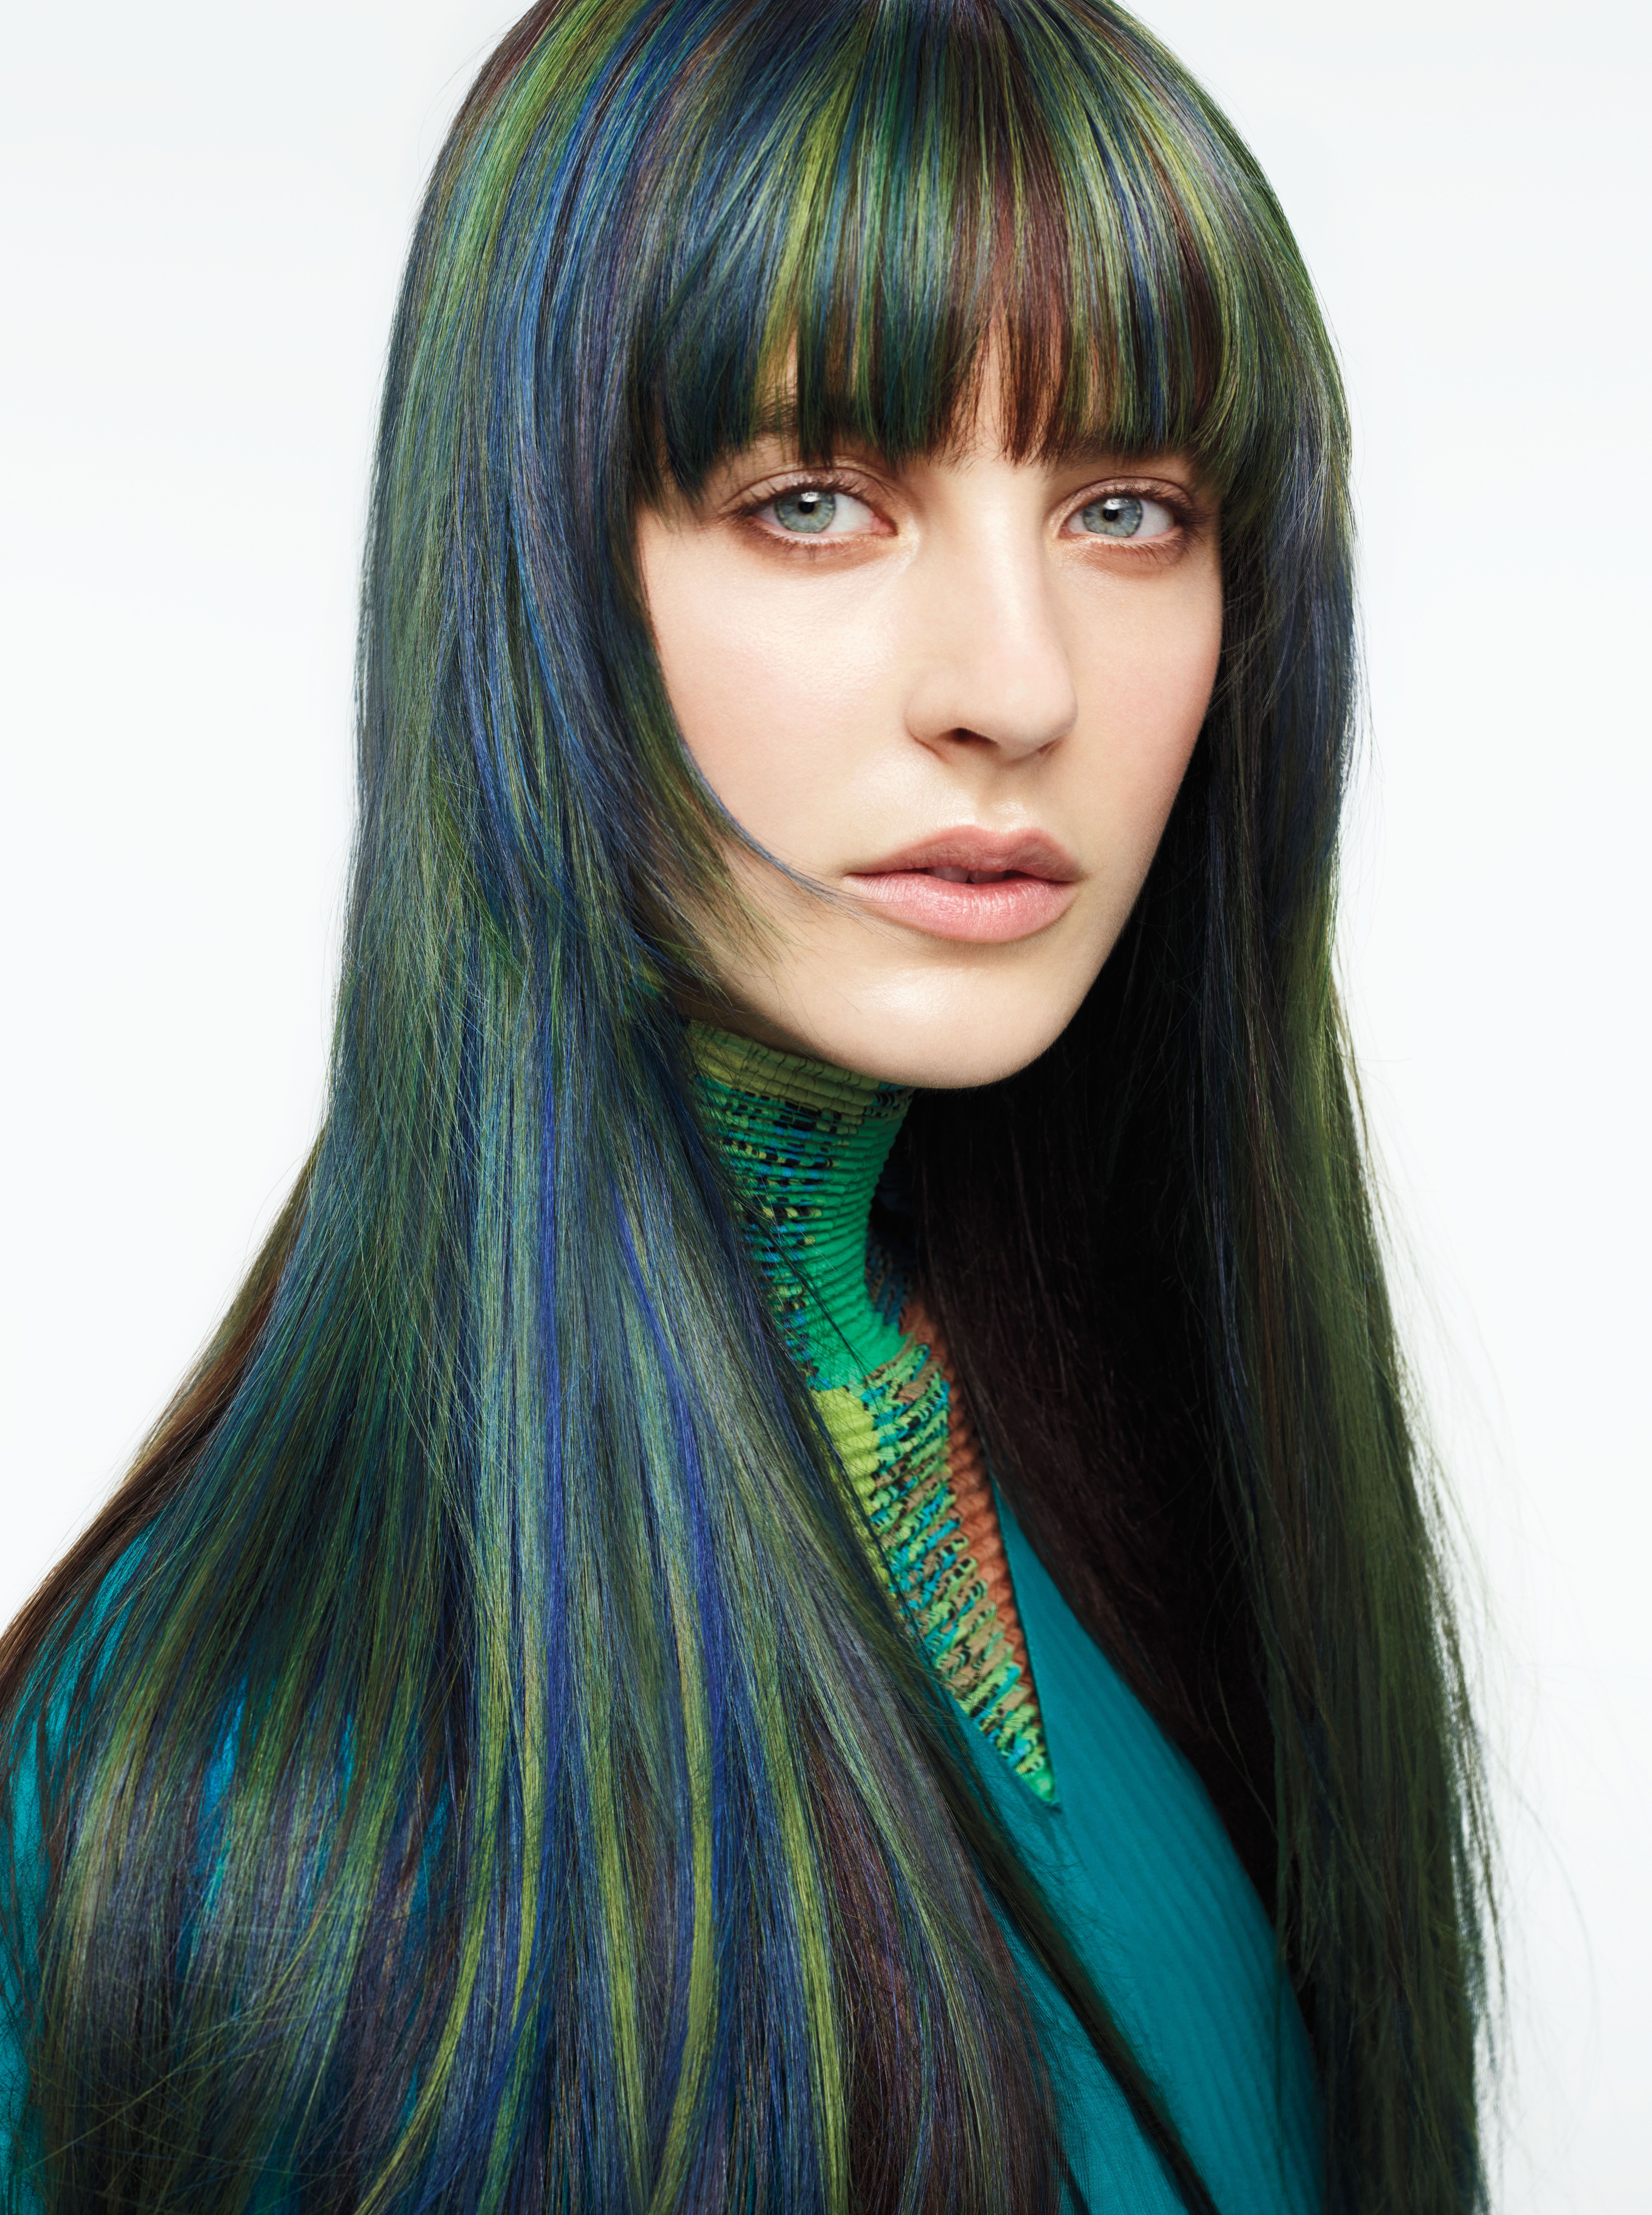 Book Your Aveda Birdsofparadise Makeup Consultation With Stacey And Thehairloungegolden Team Peacock Hair Color Hair Color Pink Ash Hair Color